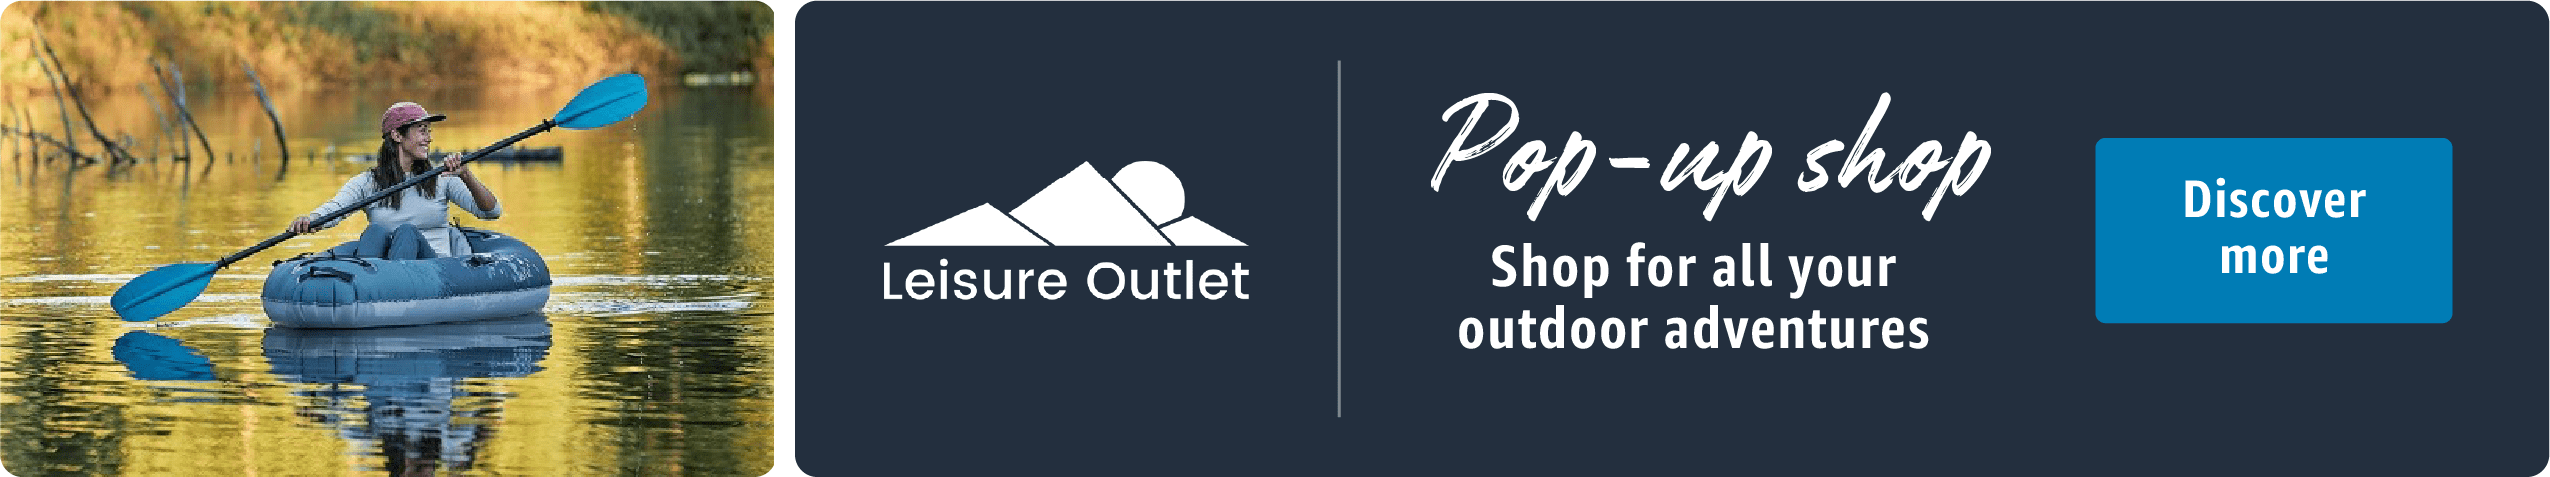 Shop for all your outdoor adventures